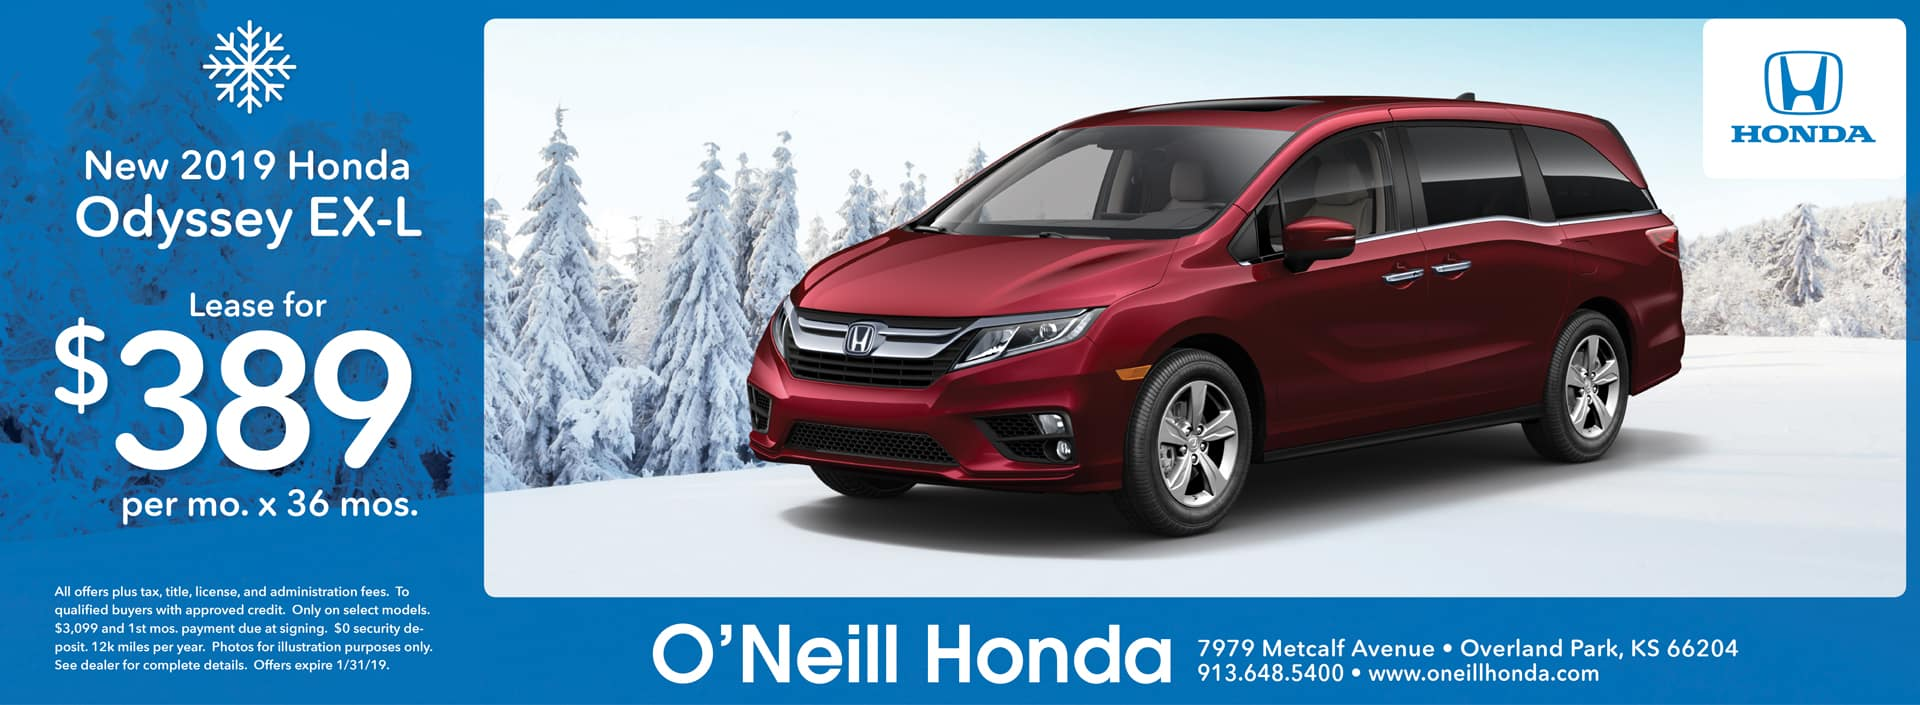 O Neill Honda New Honda Dealership Kansas City Overland Park